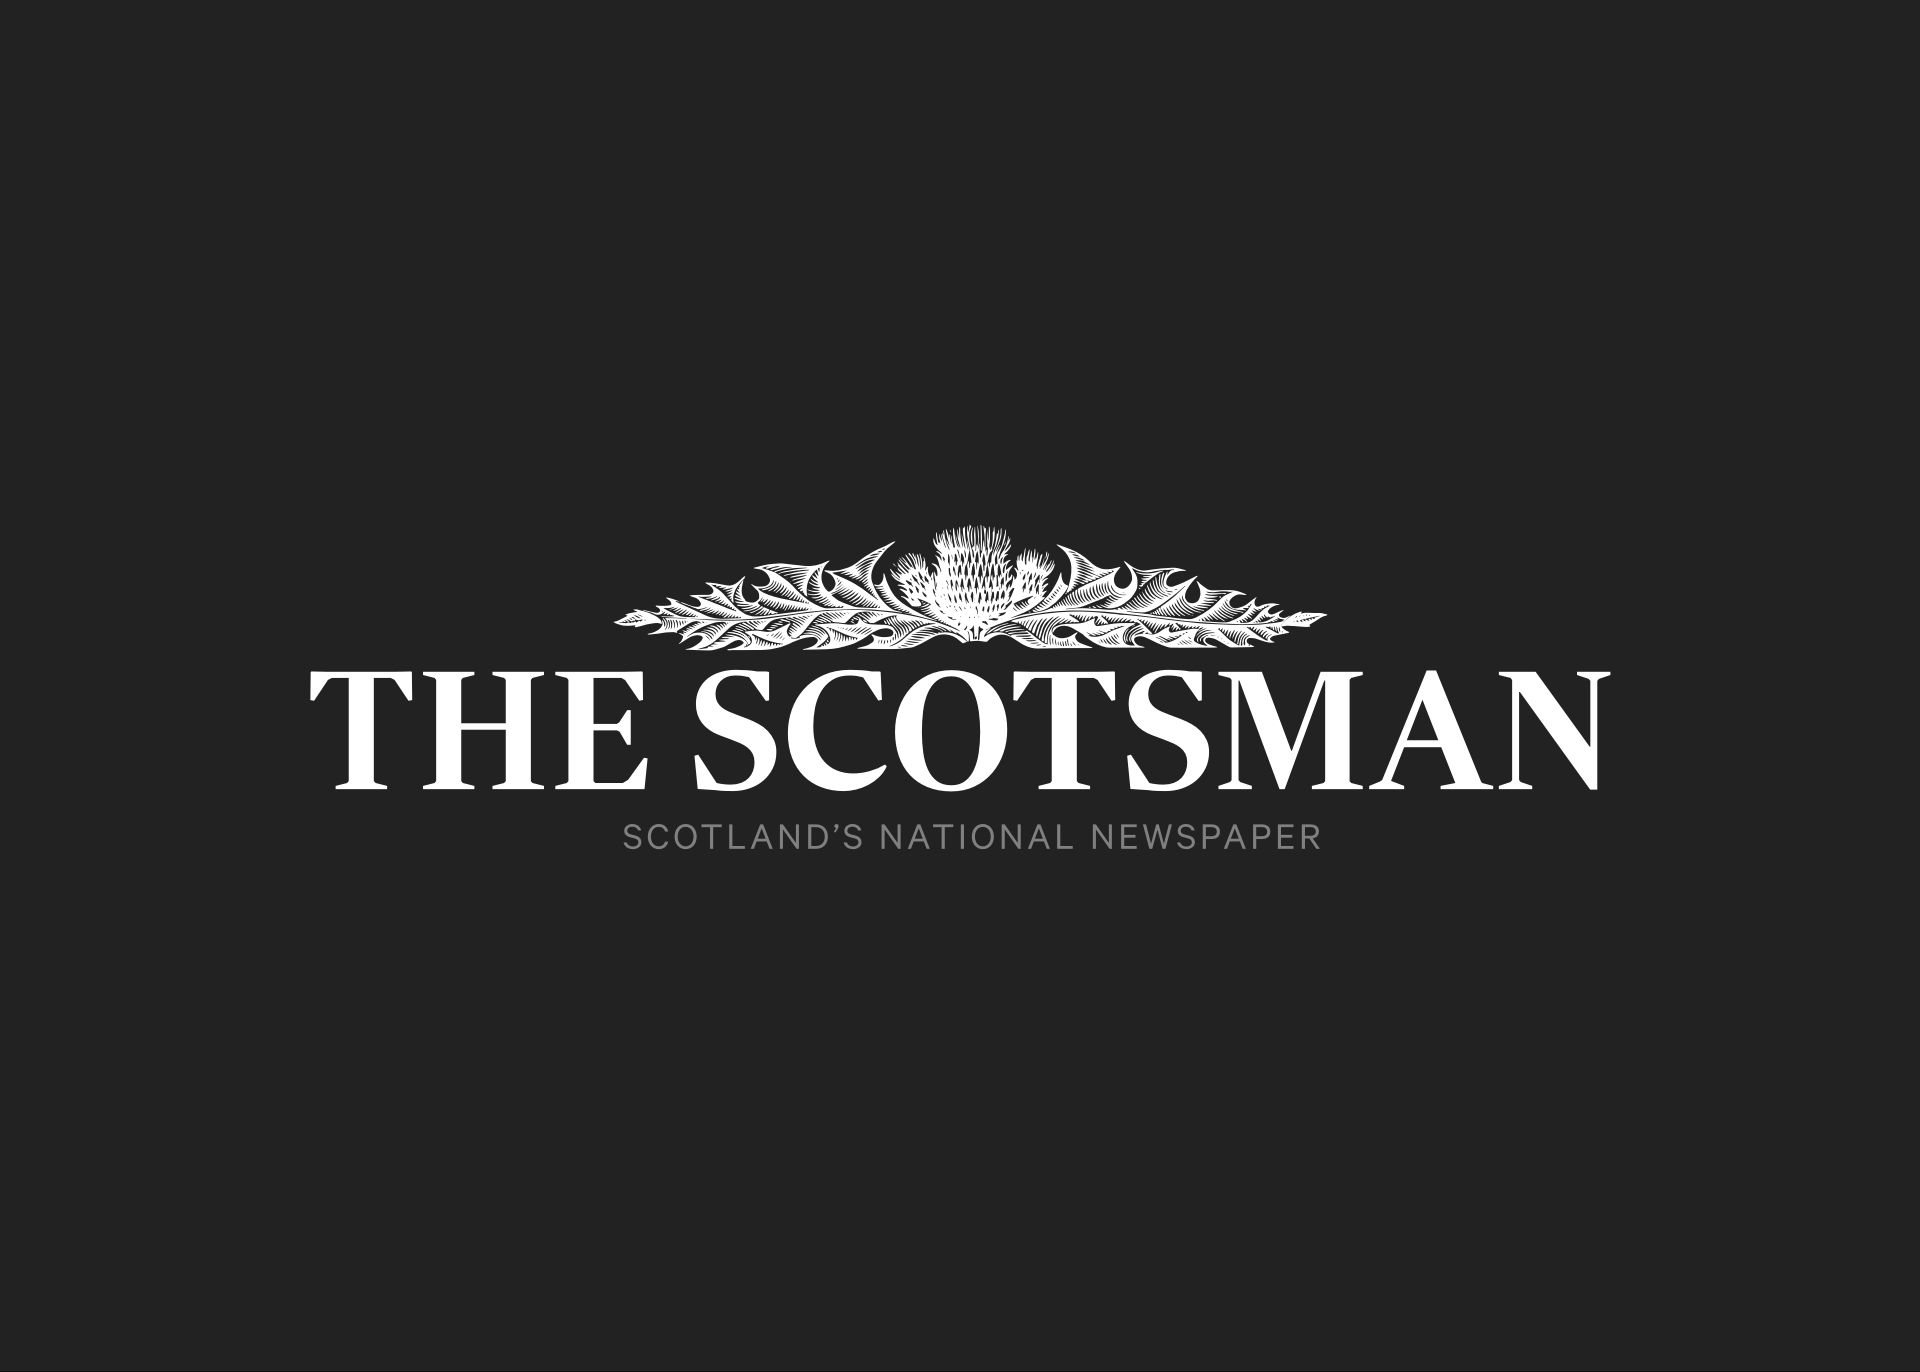 Scottish News - The Scotsman